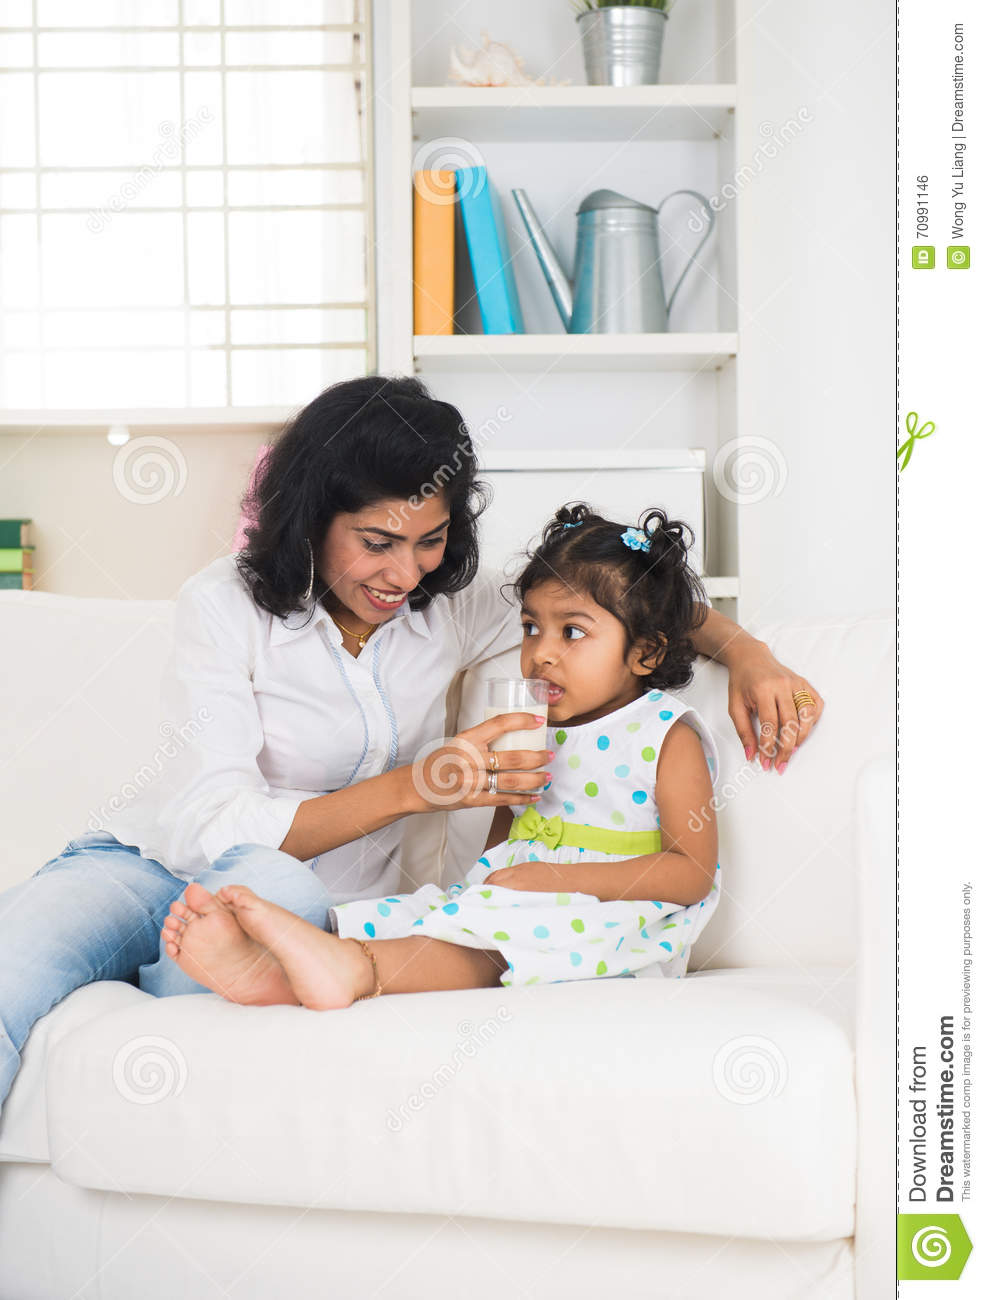 Indian mother and child stock photo  Image of indian - 70991146